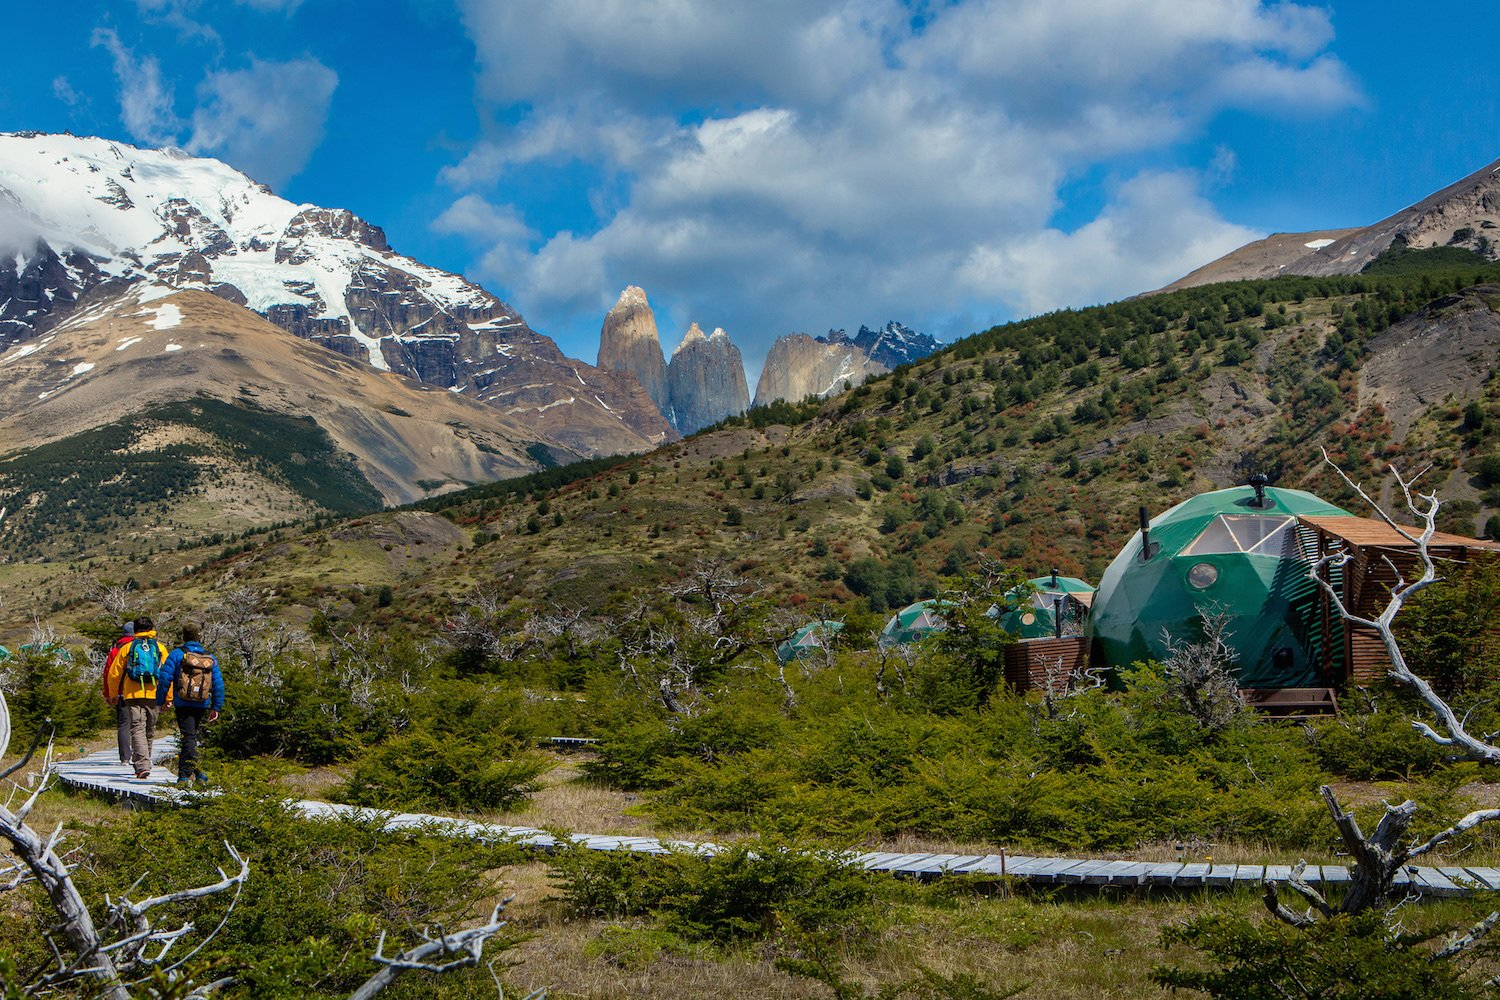 Outdoor, Shrubs, Slope, Field, Woodland, Boulders, Trees, and Walkways  Photo 8 of 13 in Soak Up the Magic of Patagonia at This Eco-Friendly Geodesic Dome Retreat